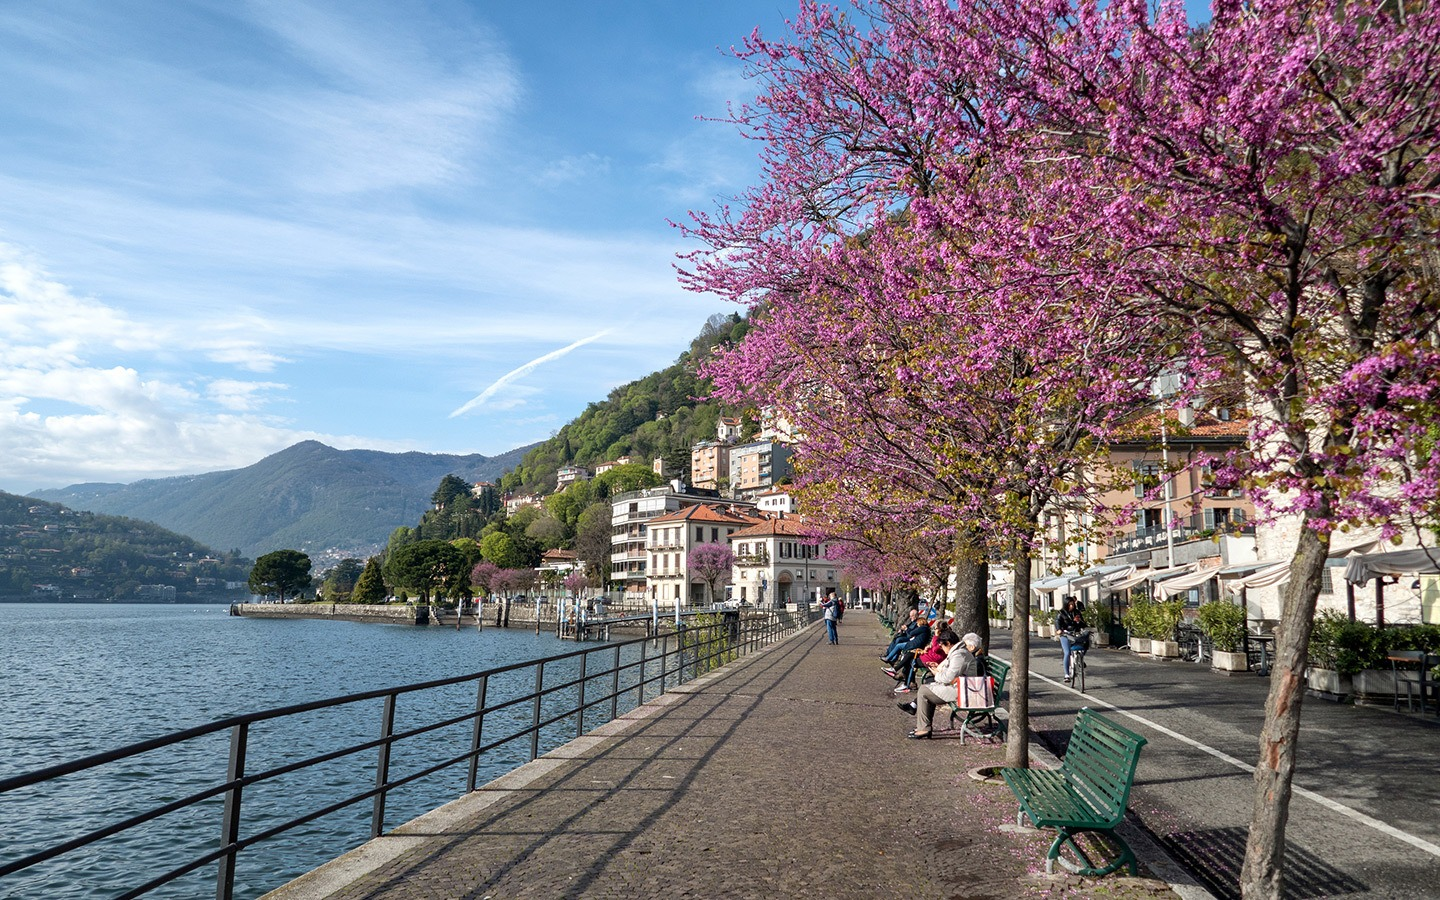 Waterfront walks along the shore of Lake Como, Italy